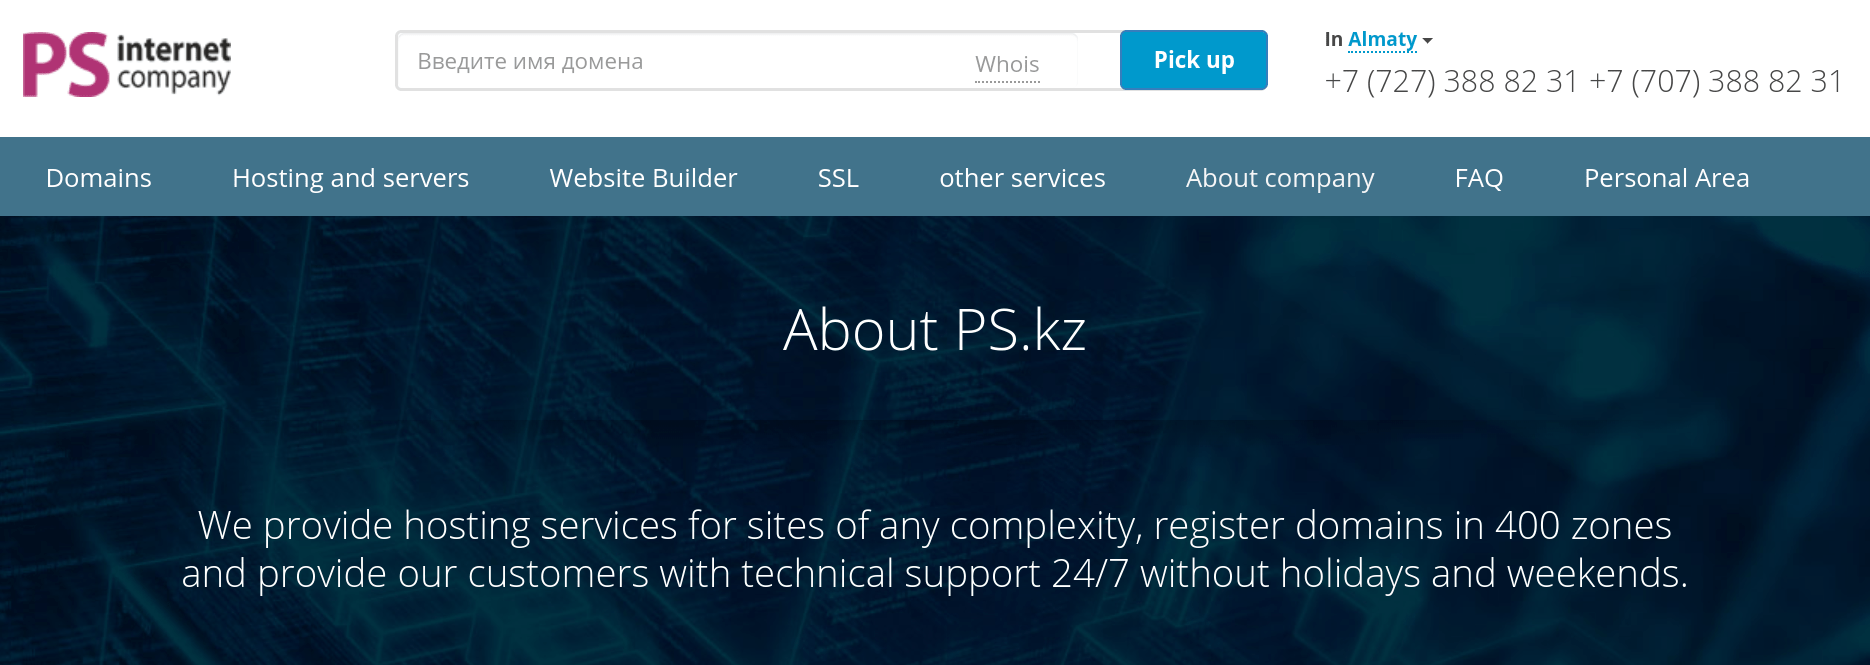 PS Internet Company